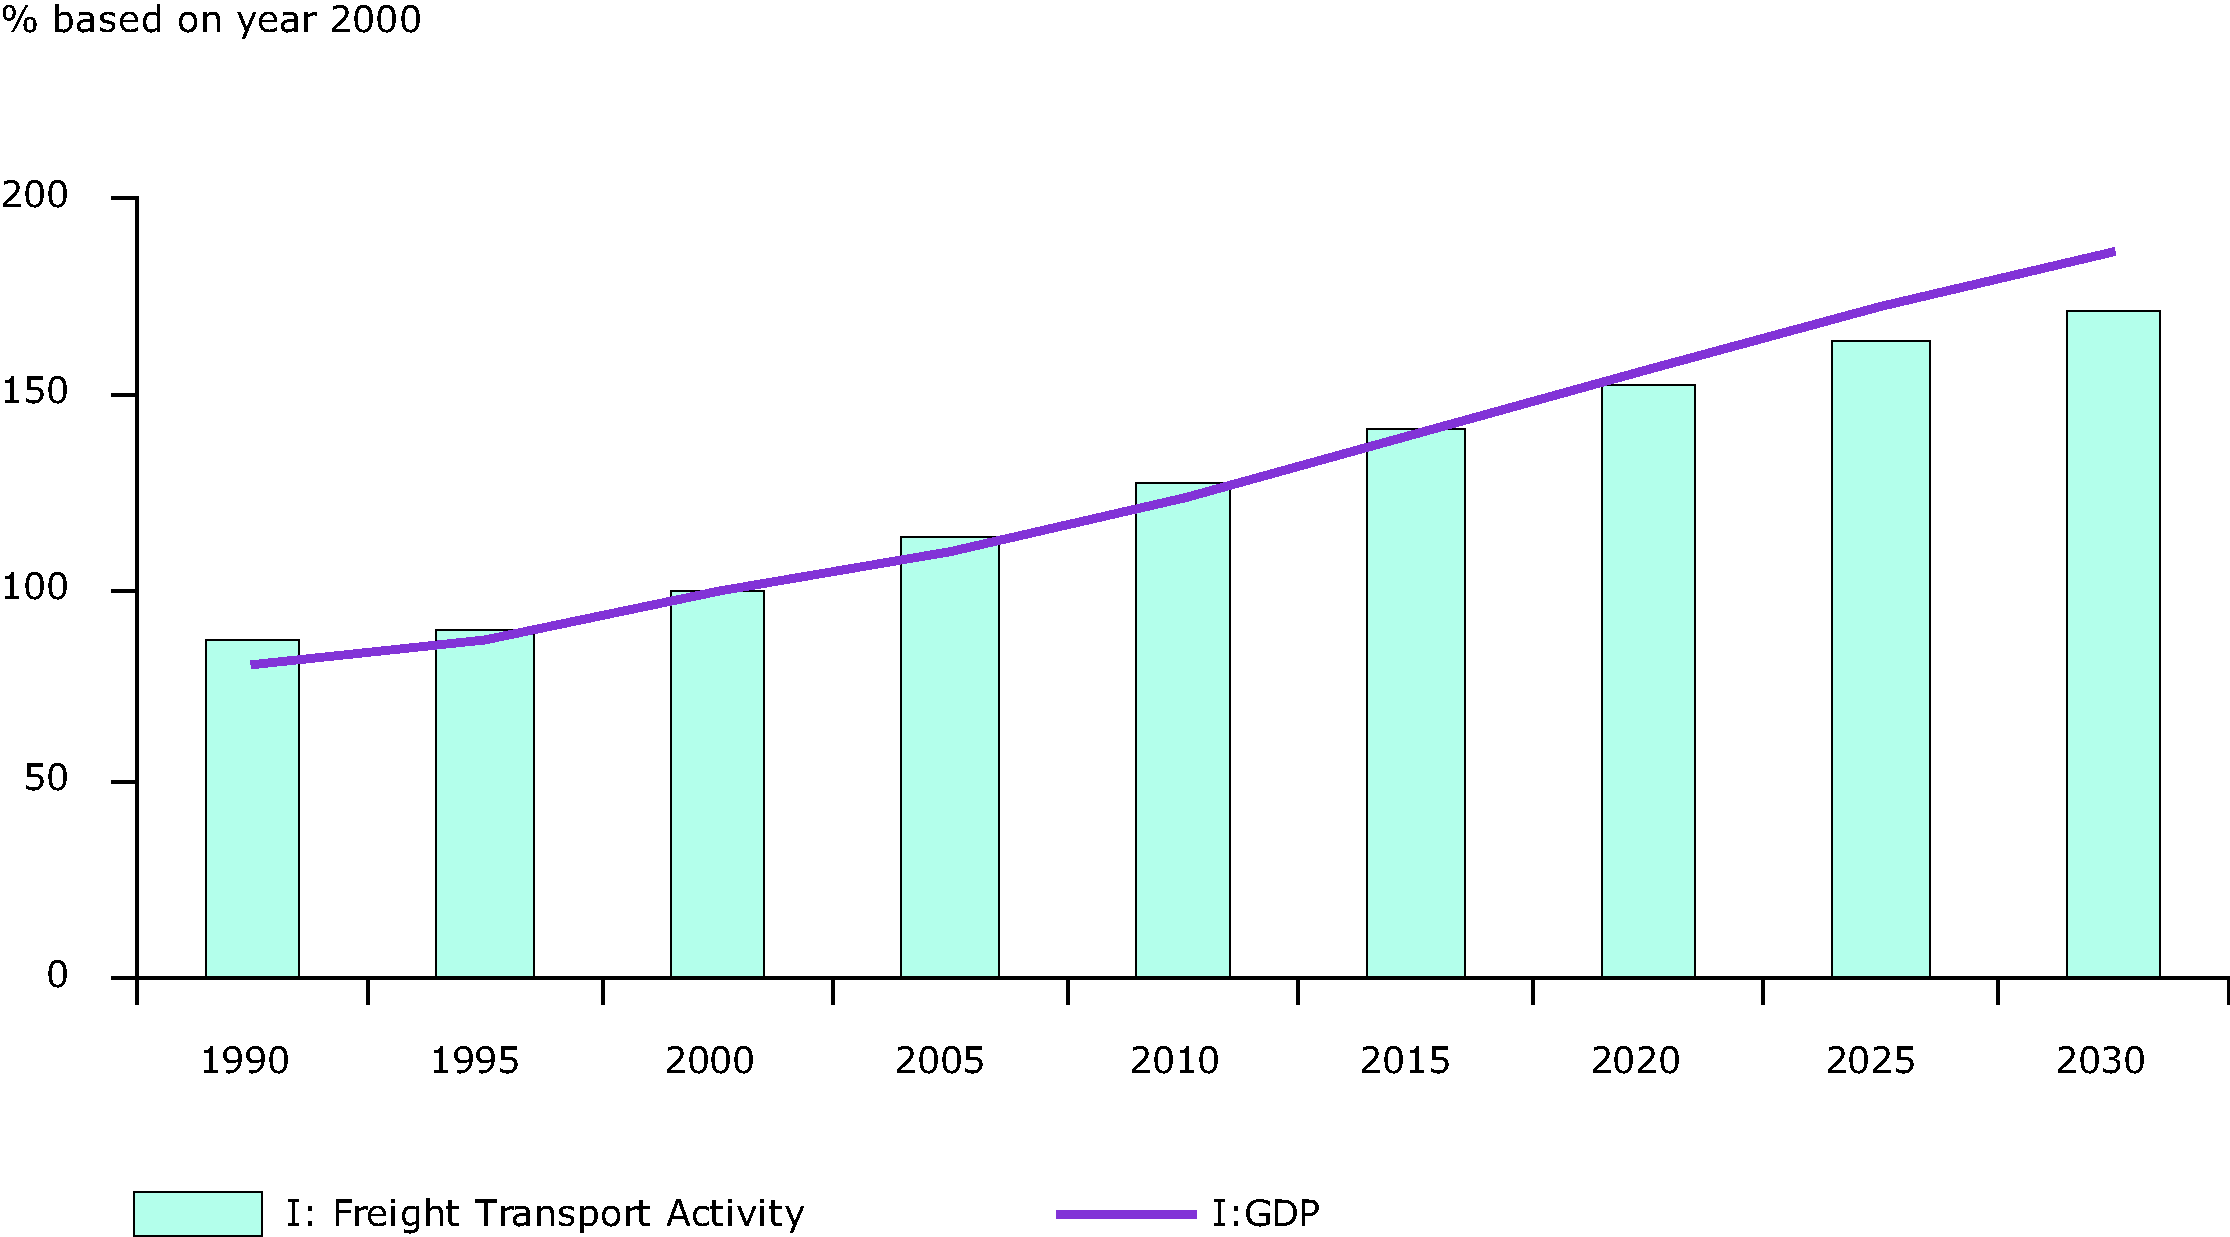 Freight transport activity increase in comparison to GDP growth in EU 27, 1990-2030